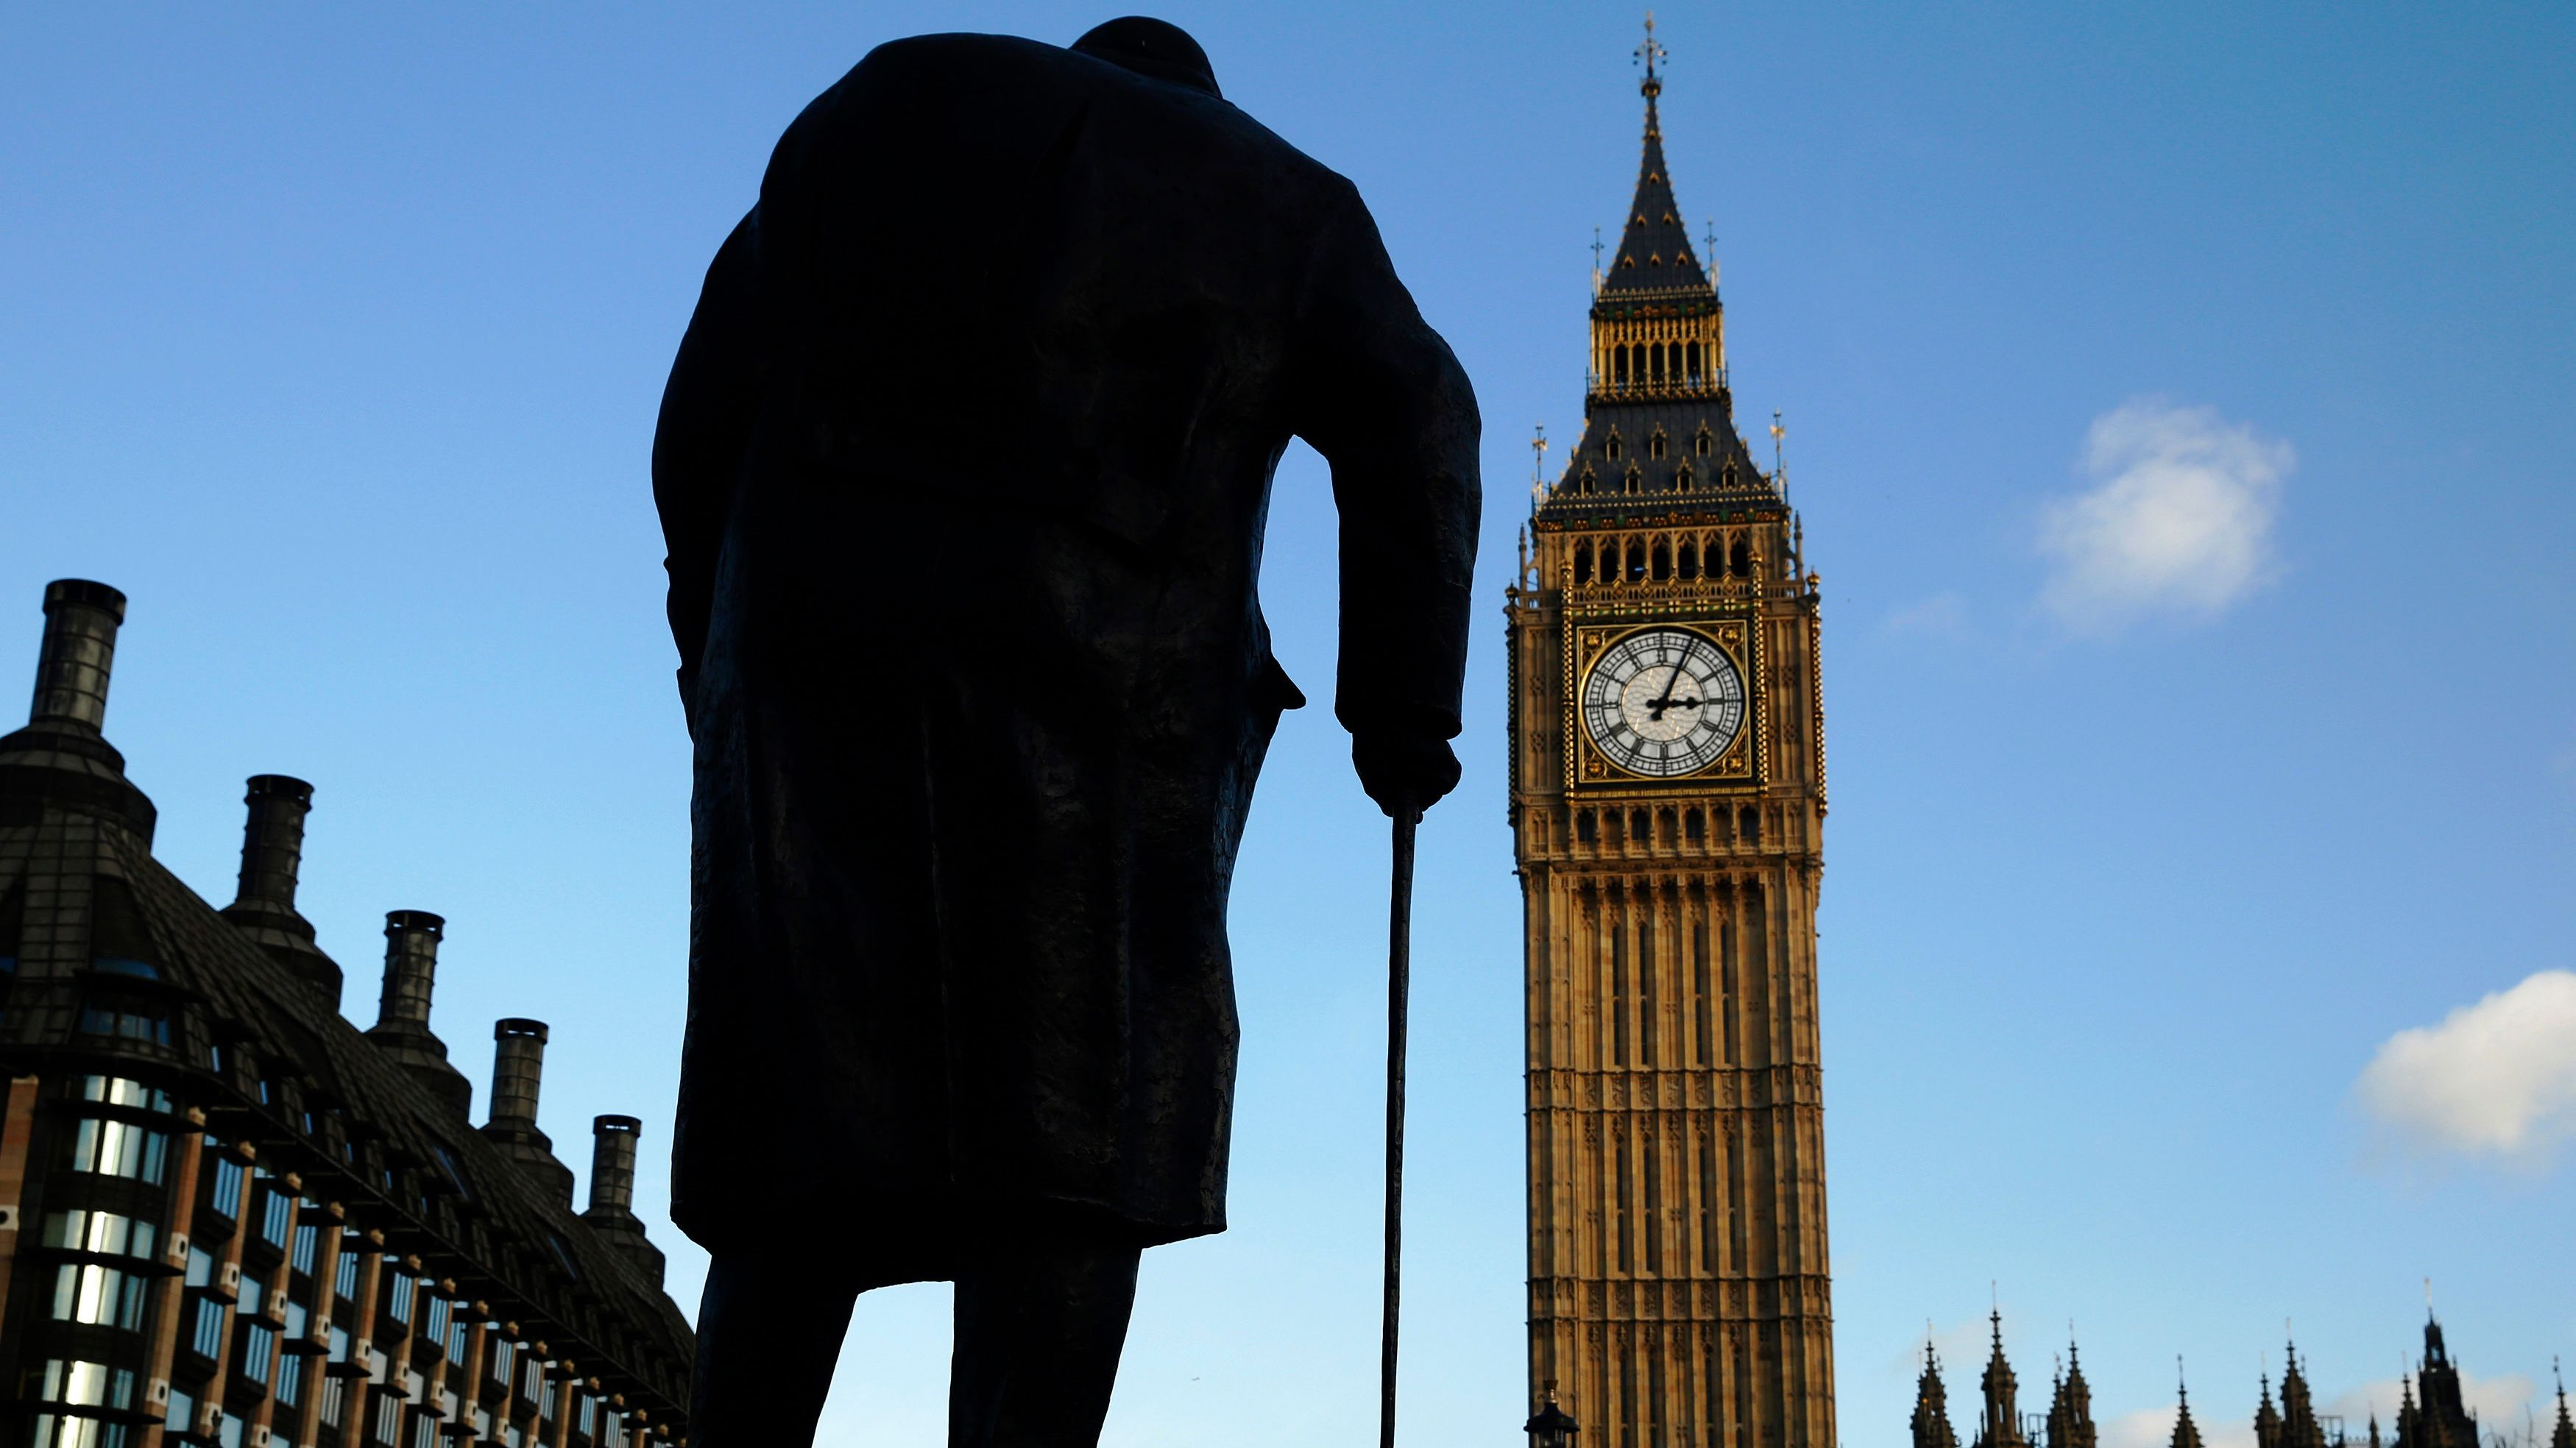 The statue of Britain's former Prime Minister Winston Churchill is silhouetted in front of the Houses of Parliament in London